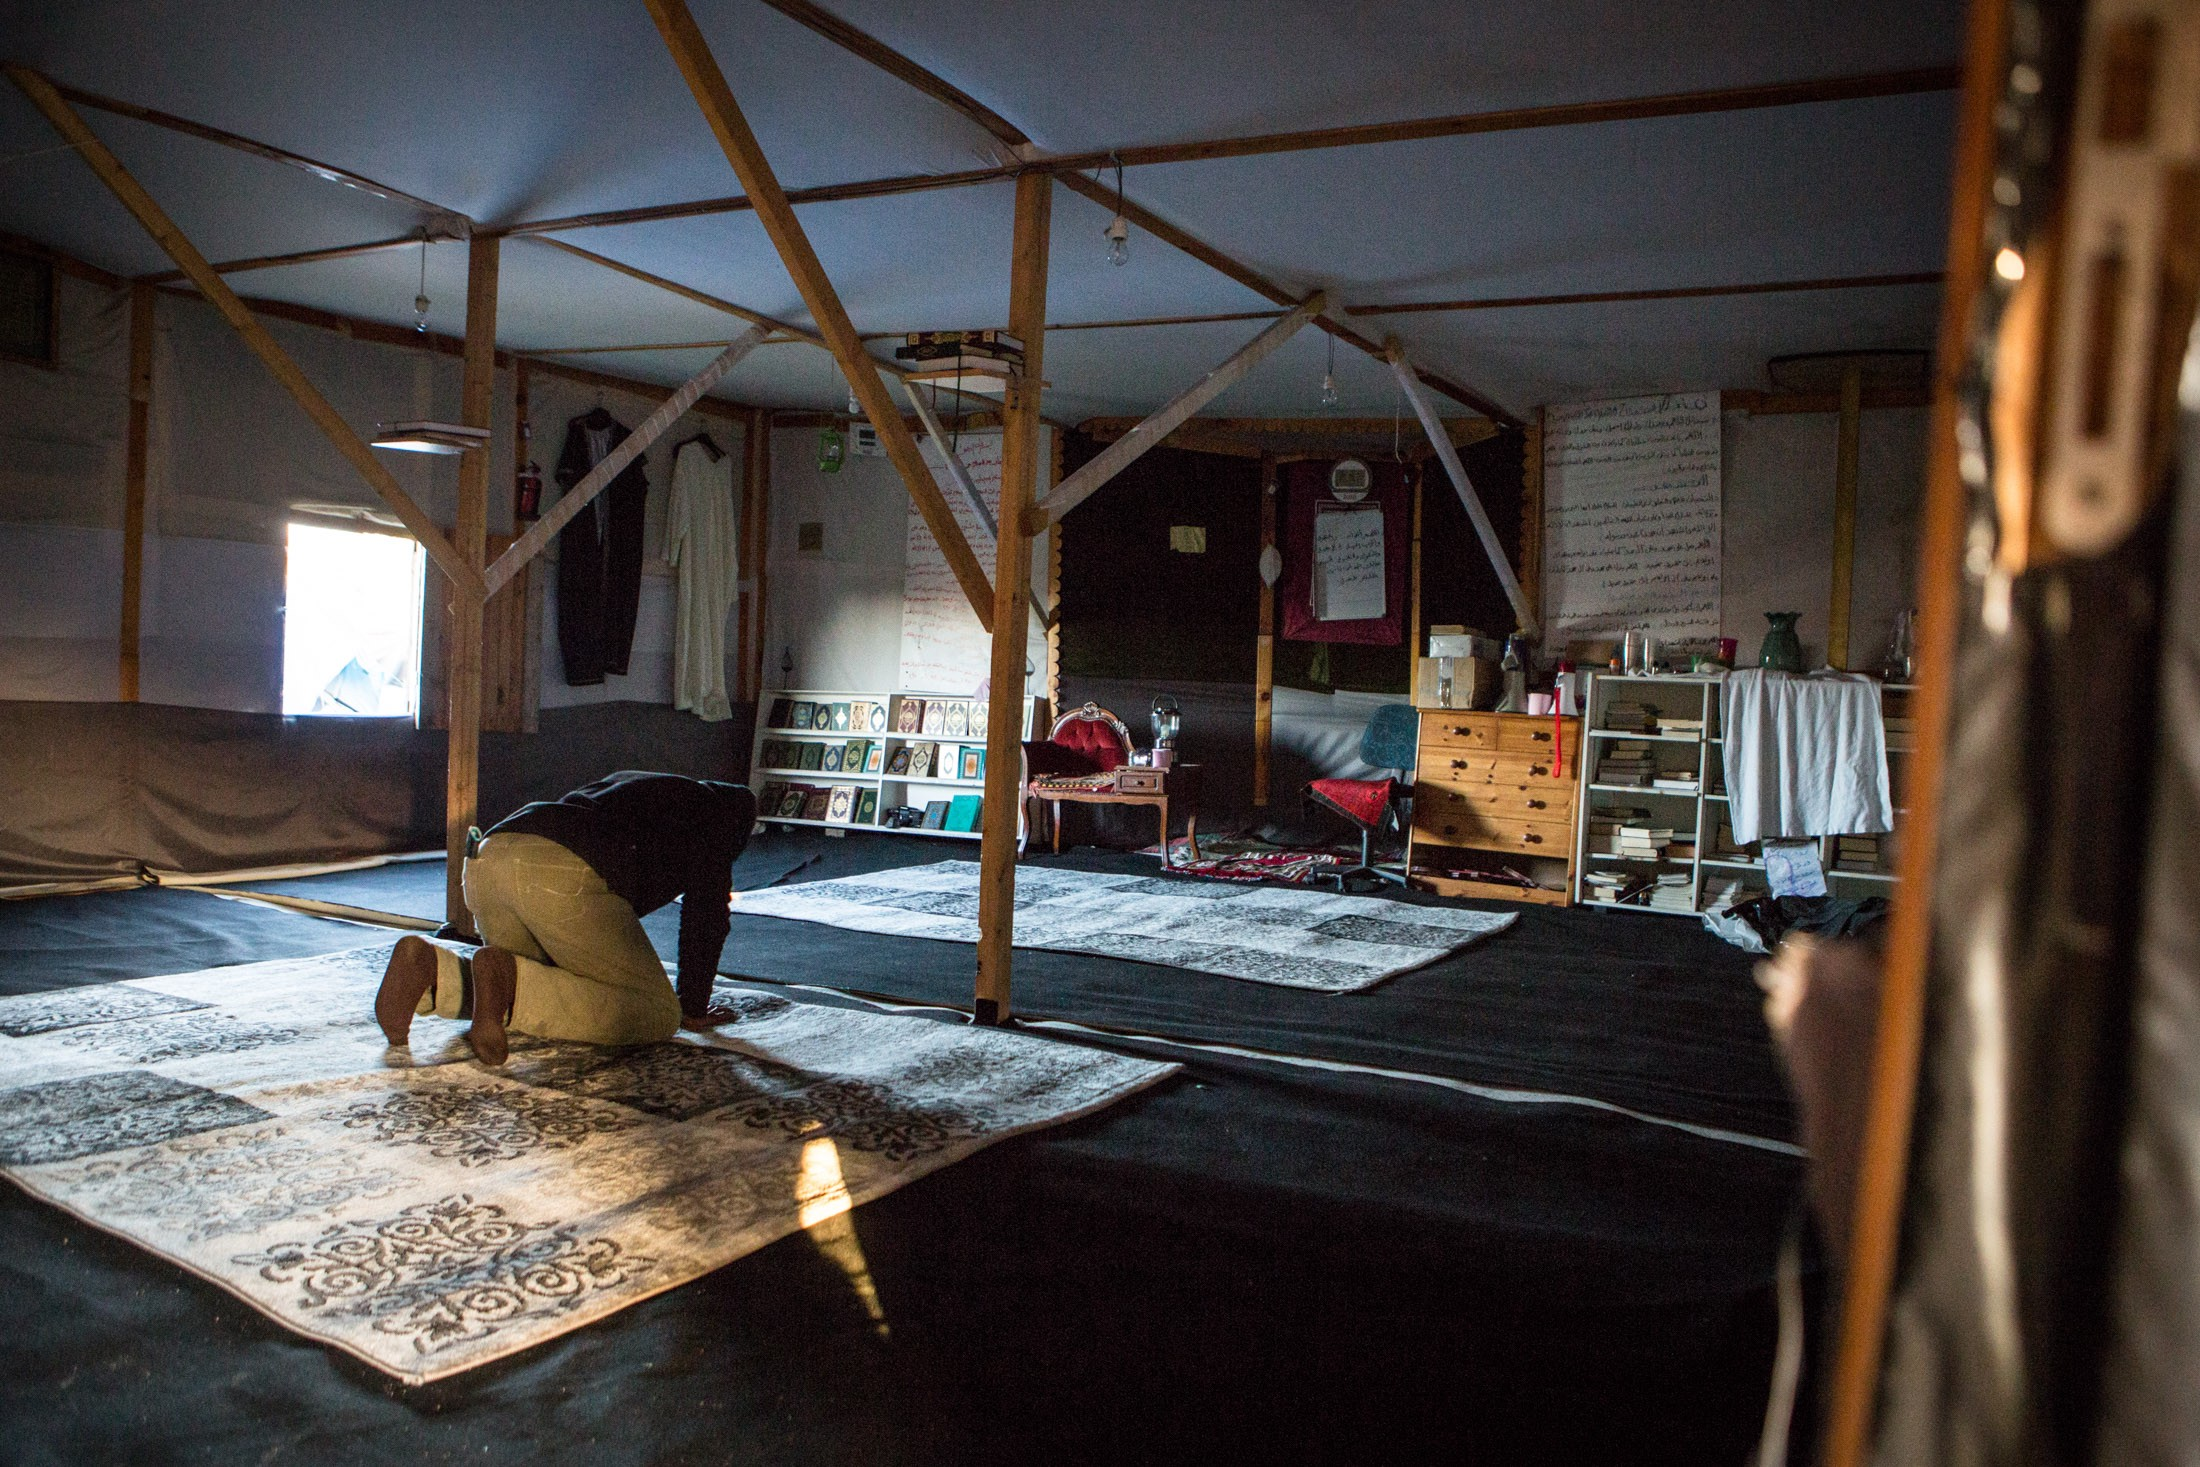 The doors are always open at houses of worship in the Jungle. In the makeshift mosques, new arrivals are given sanctuary for a night, then receive donated tents and sleeping bags to erect their own shelters.